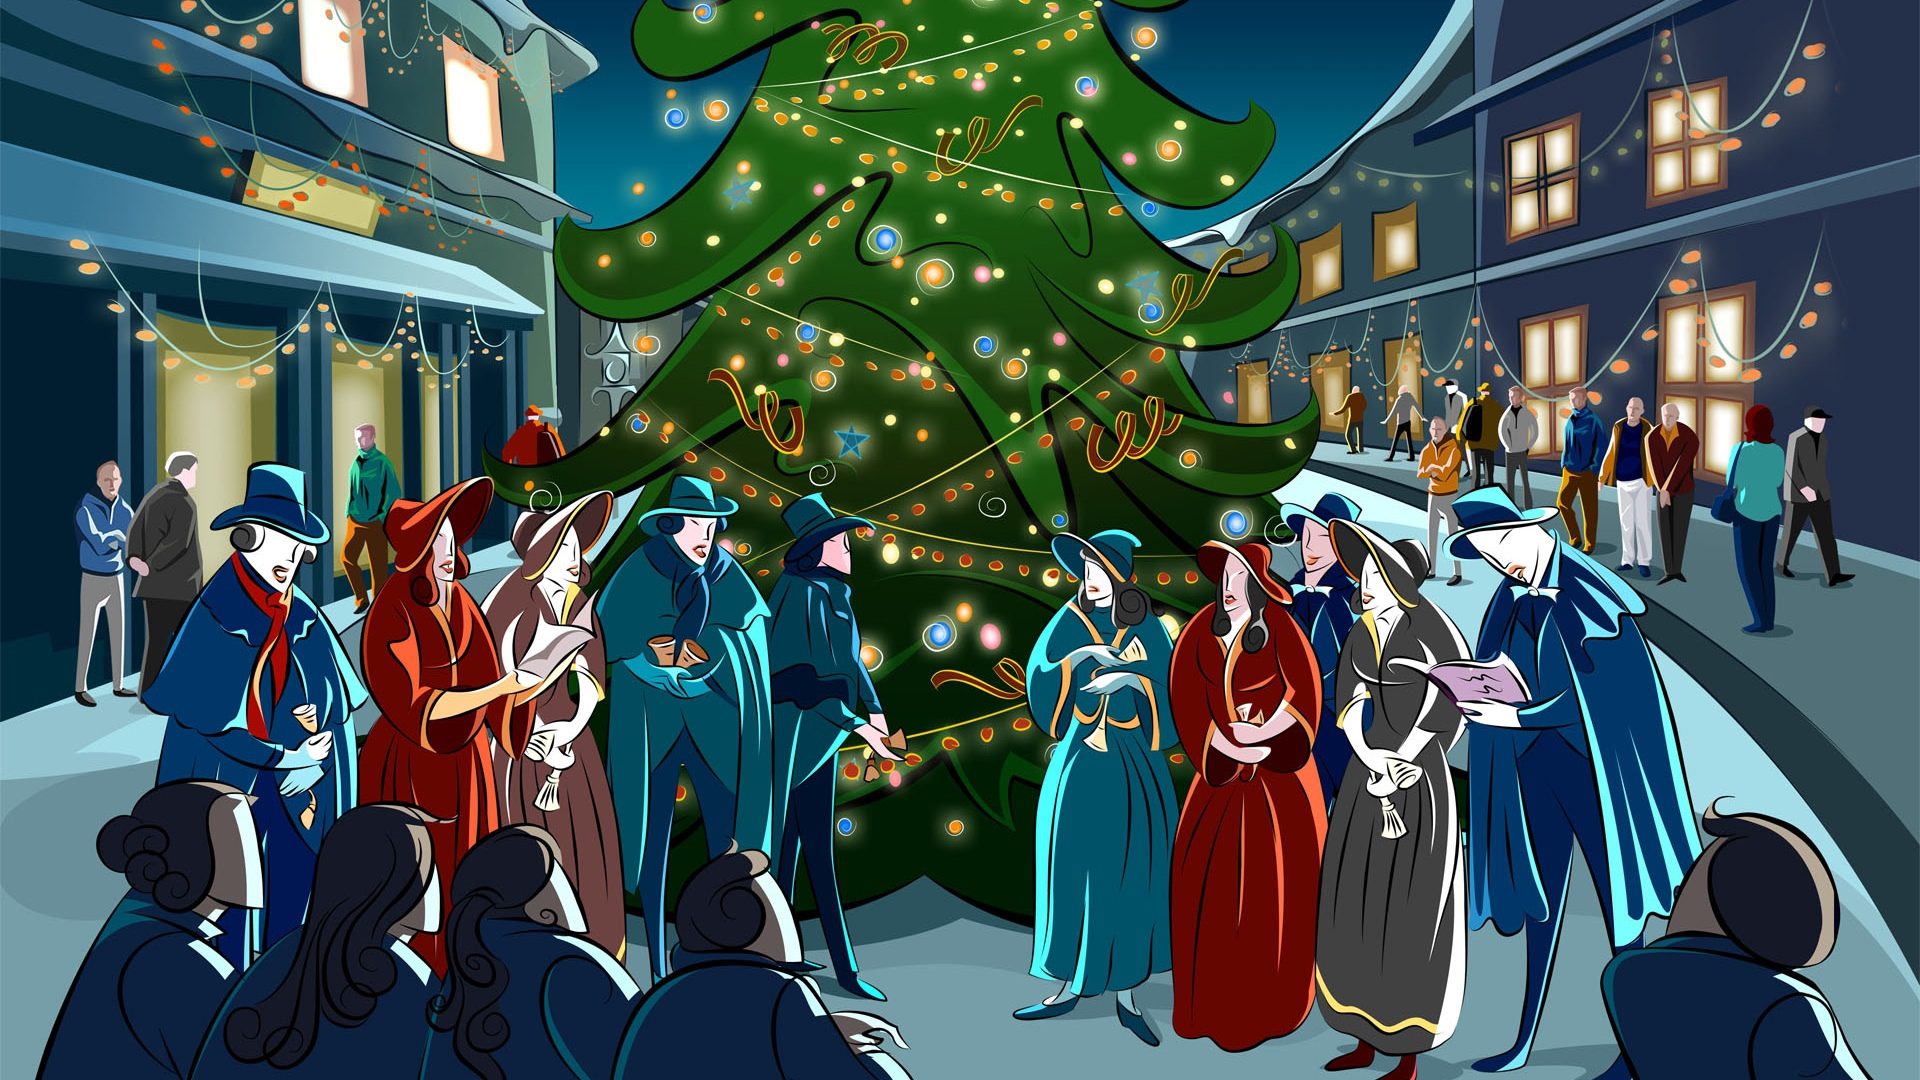 Polaris Outlaw 50 >> Christmas Carolers in Front of Tree | CARTOON